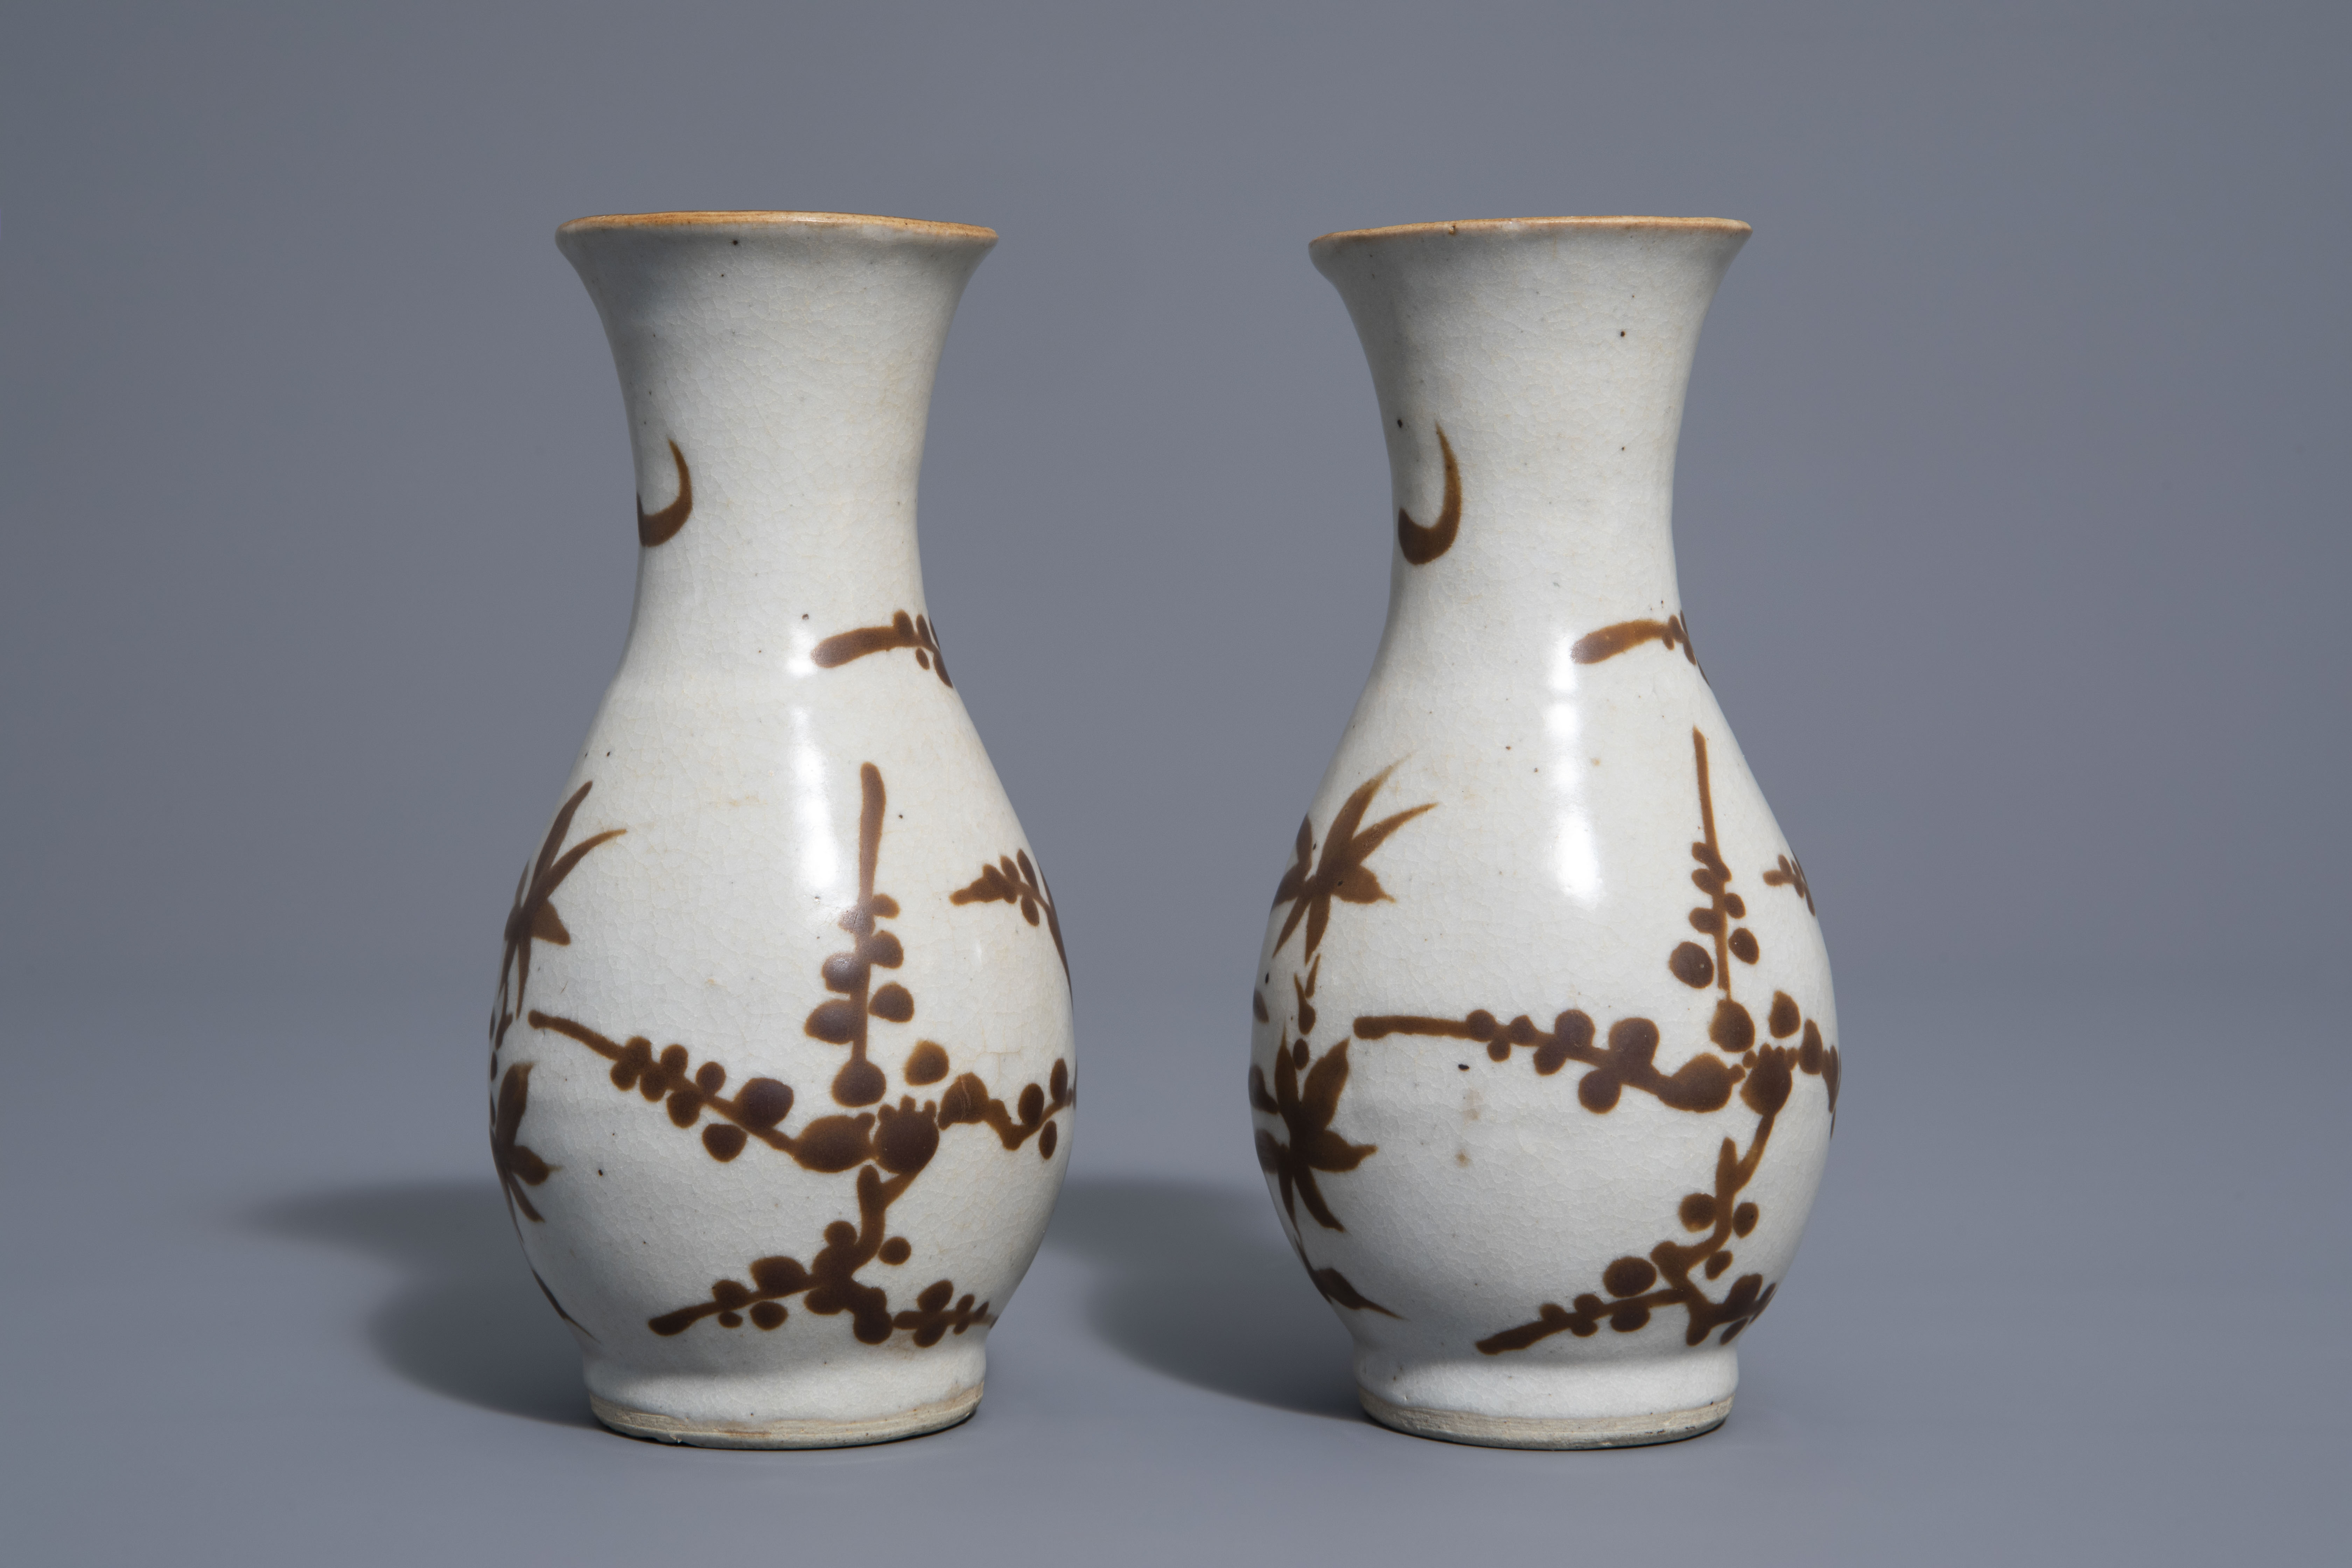 A pair of Chinese Cizhou style slip decorated vases with birds on blossoming branches, 19th C. - Image 3 of 7